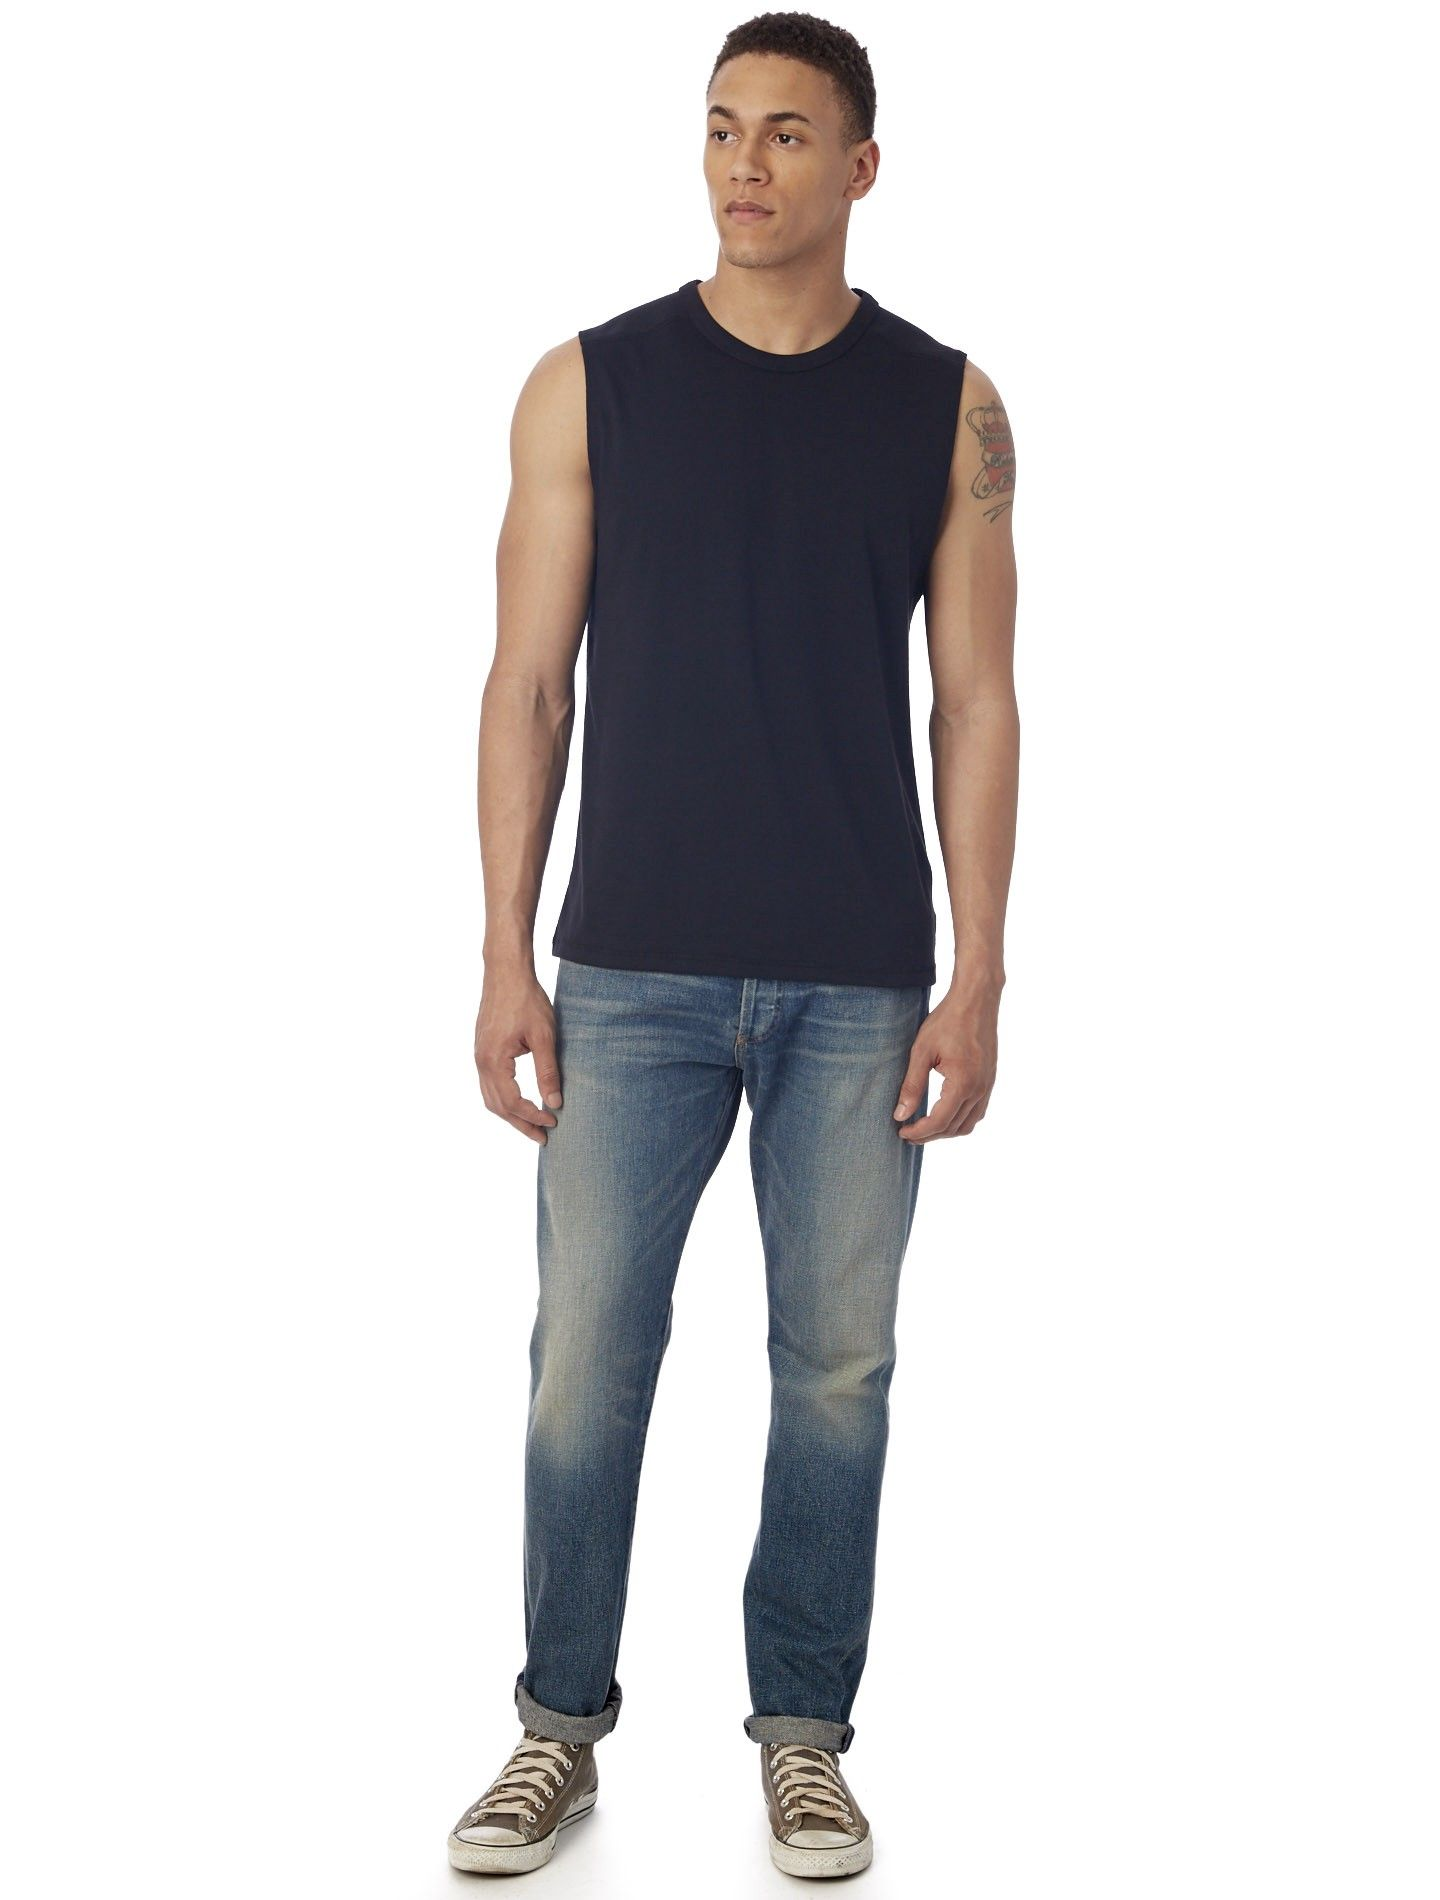 e021b241 Keeper Vintage Jersey Muscle Tank Top 0 star rating by Alternative ...